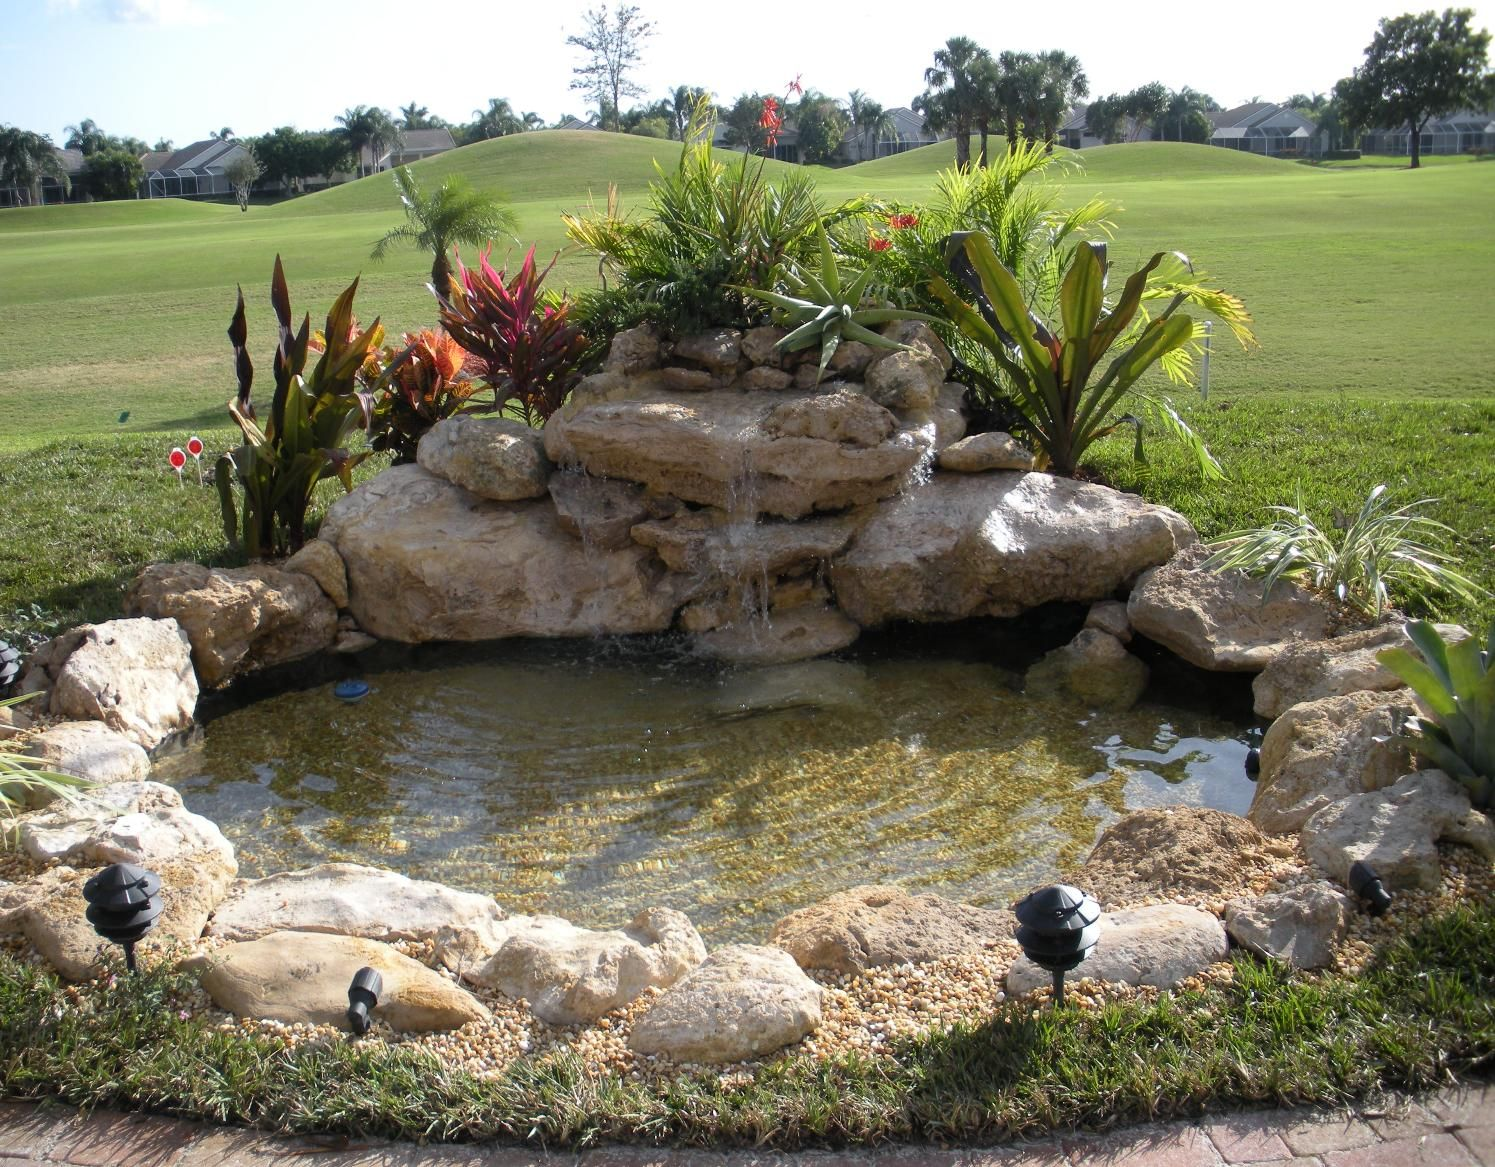 Landscaping waterfalls and fish ponds ways to maintain for Fish pond landscaping